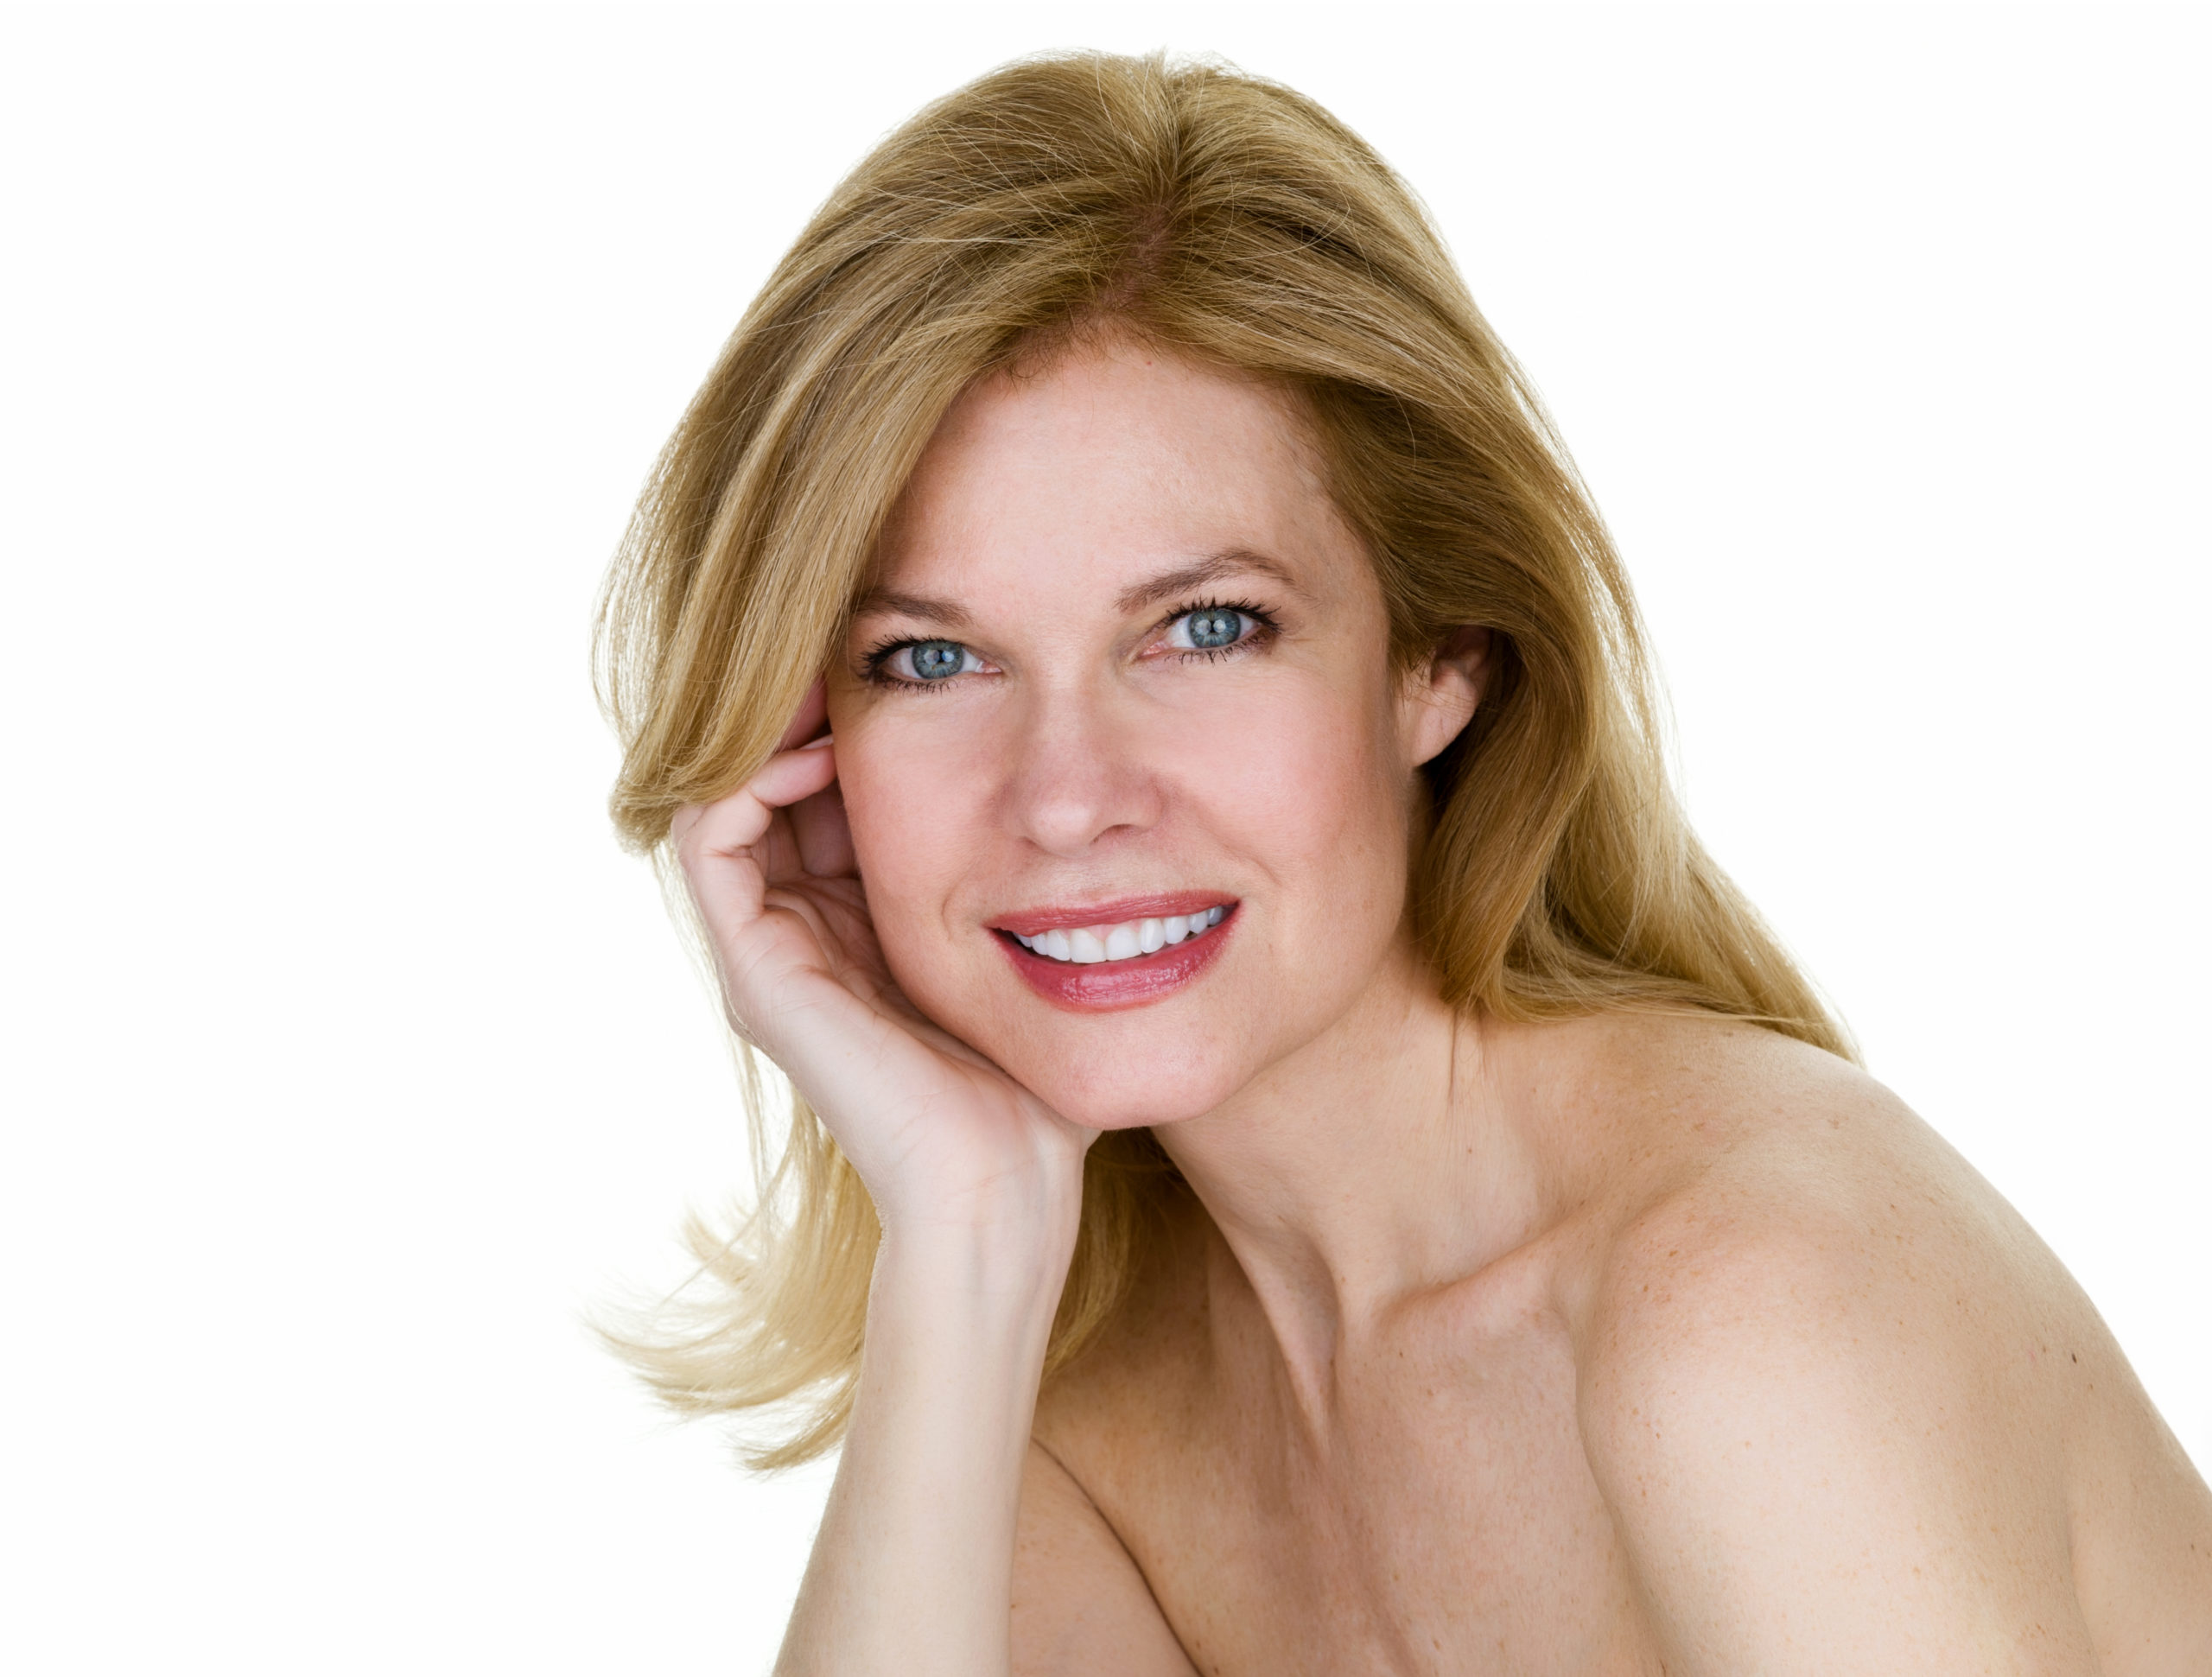 beautiful woman happy after getting botox highlands ranch style